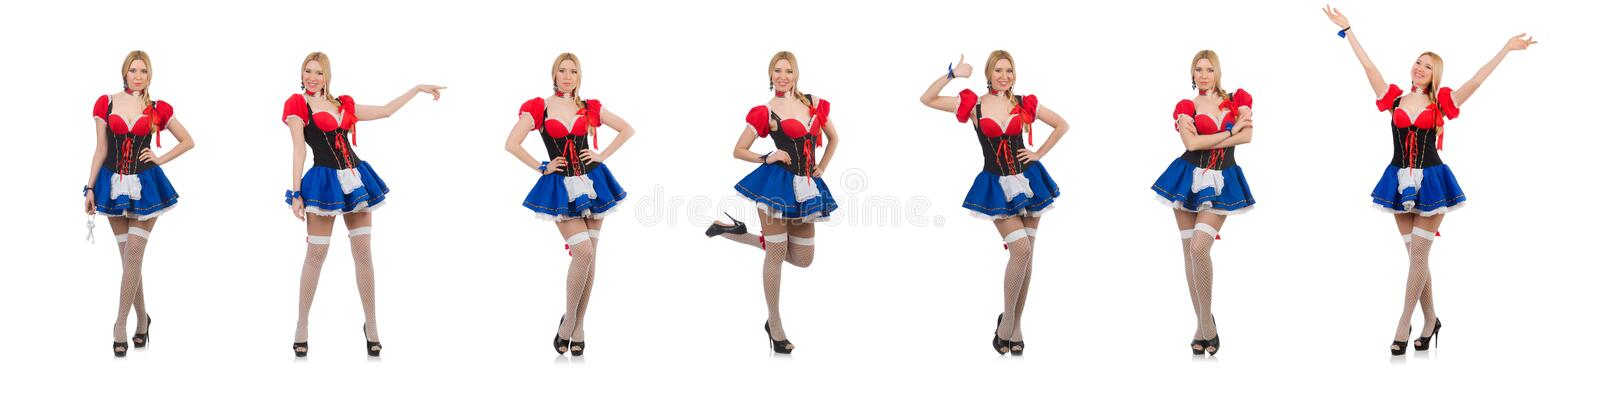 Pretty girl in bavarian dress isolated on white stock photo